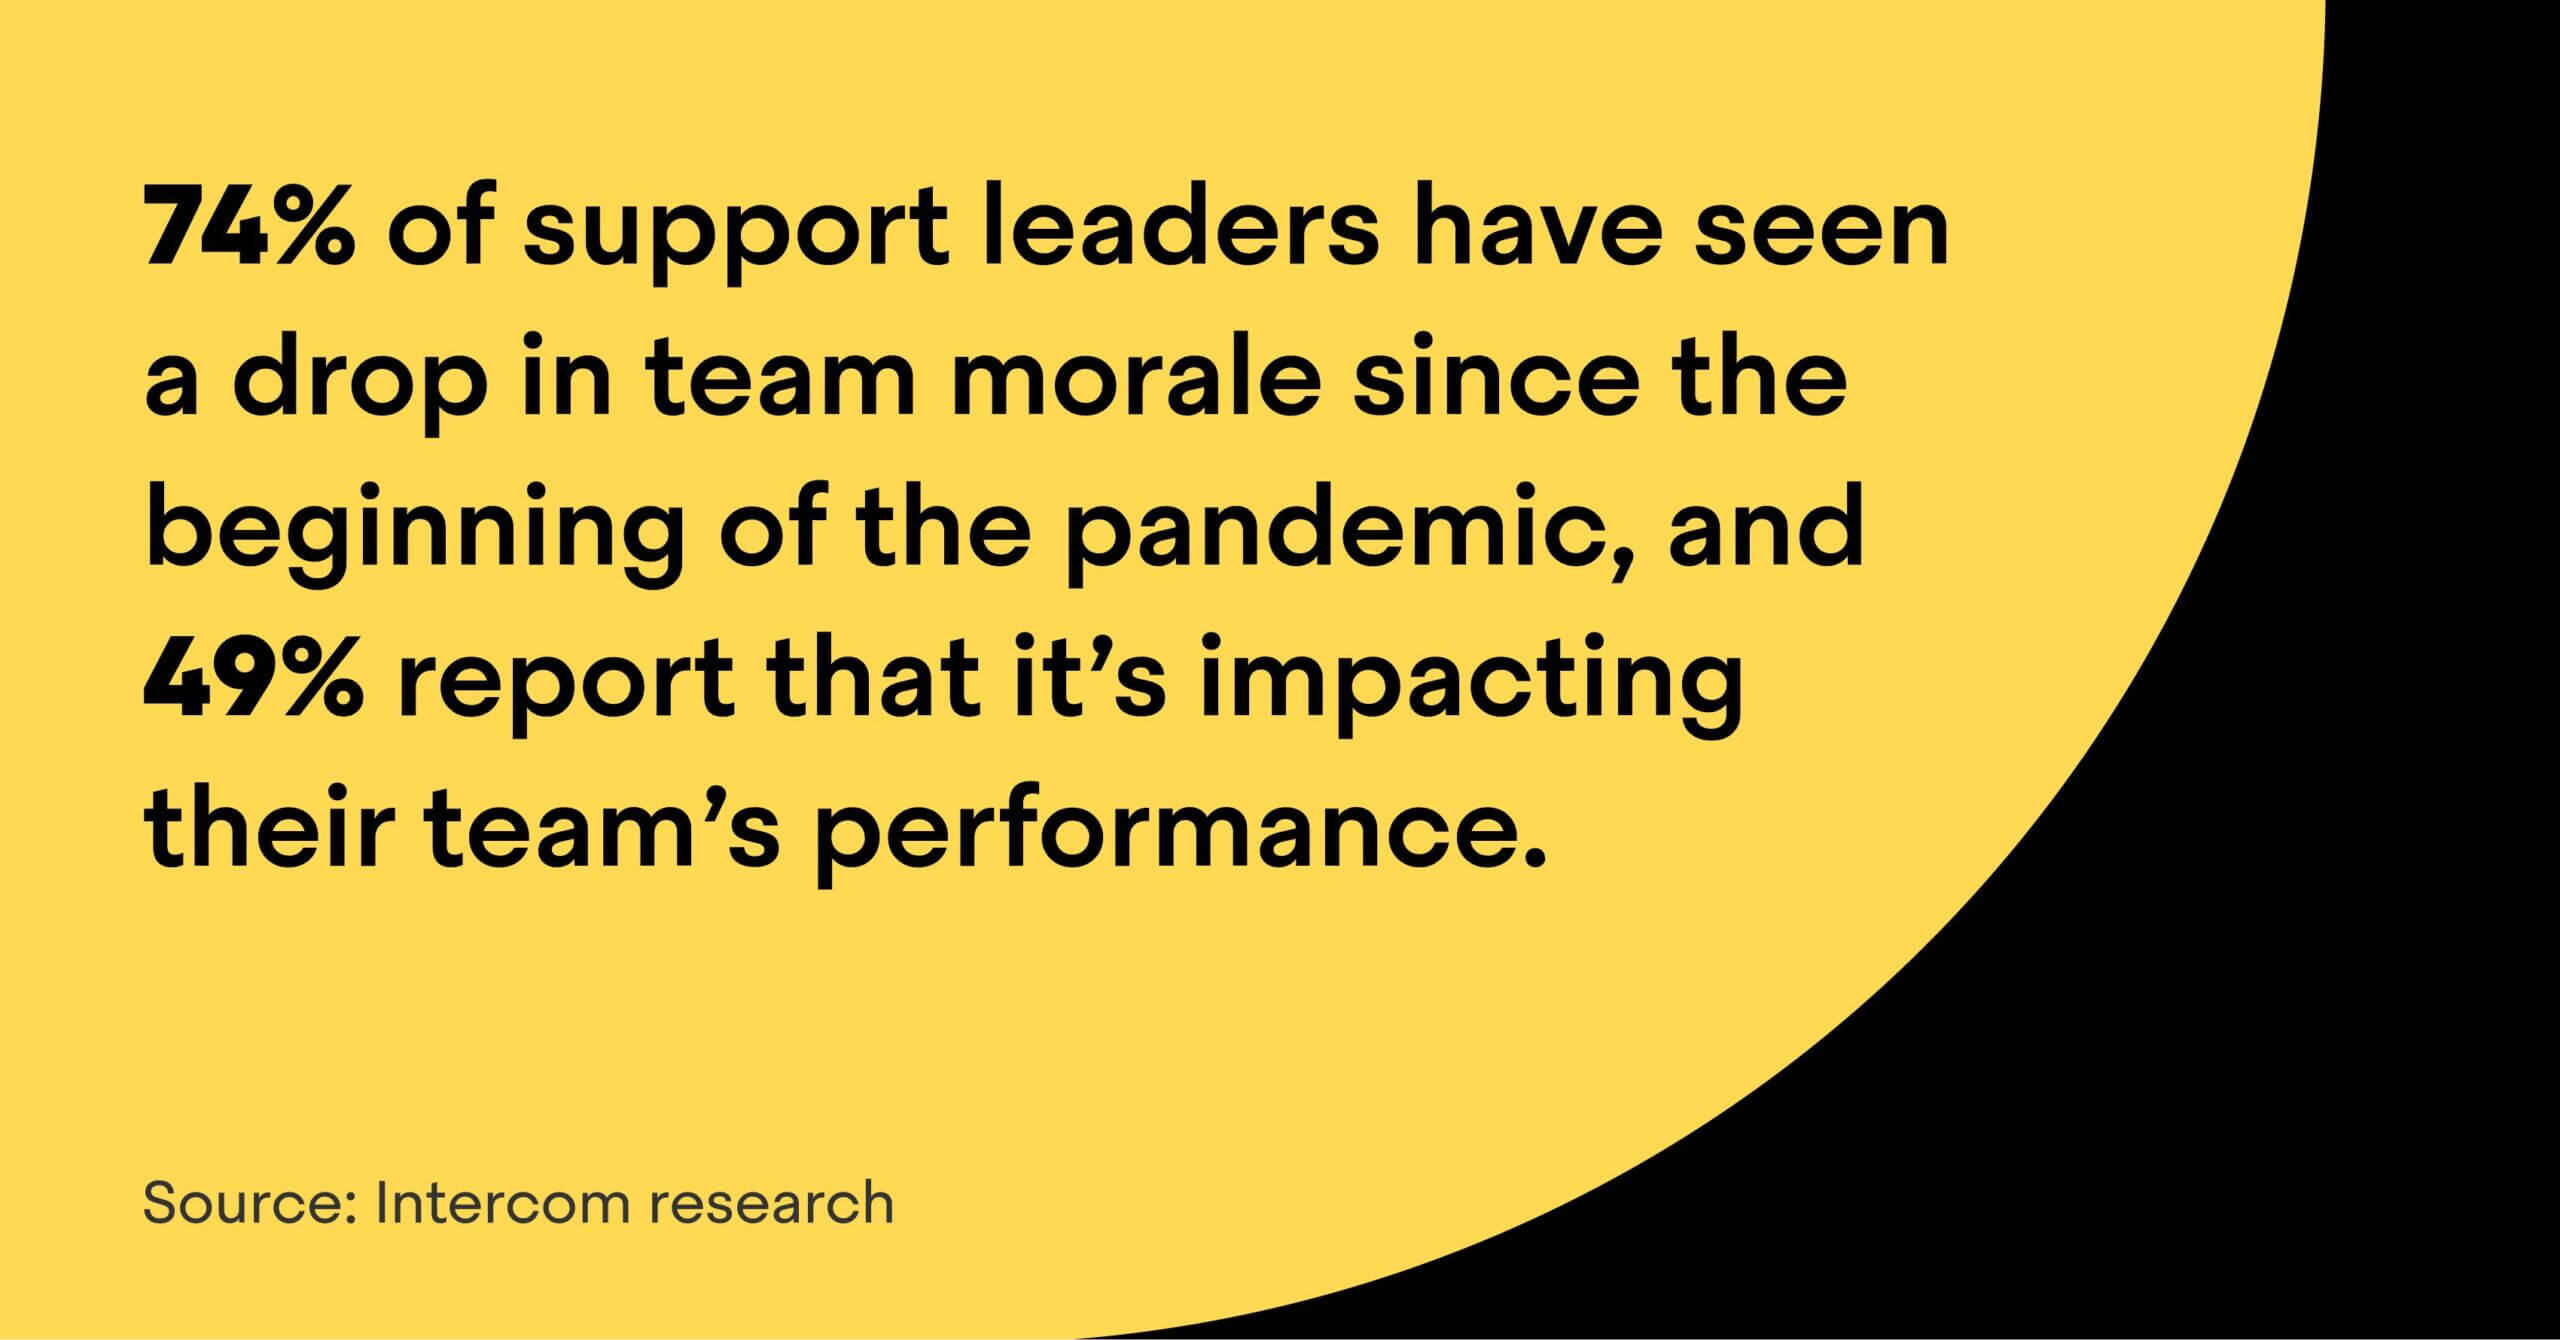 74% of support leaders have seen a drop in team morale since the beginning of the pandemic, and 49% report that it's impacting their team's performance.